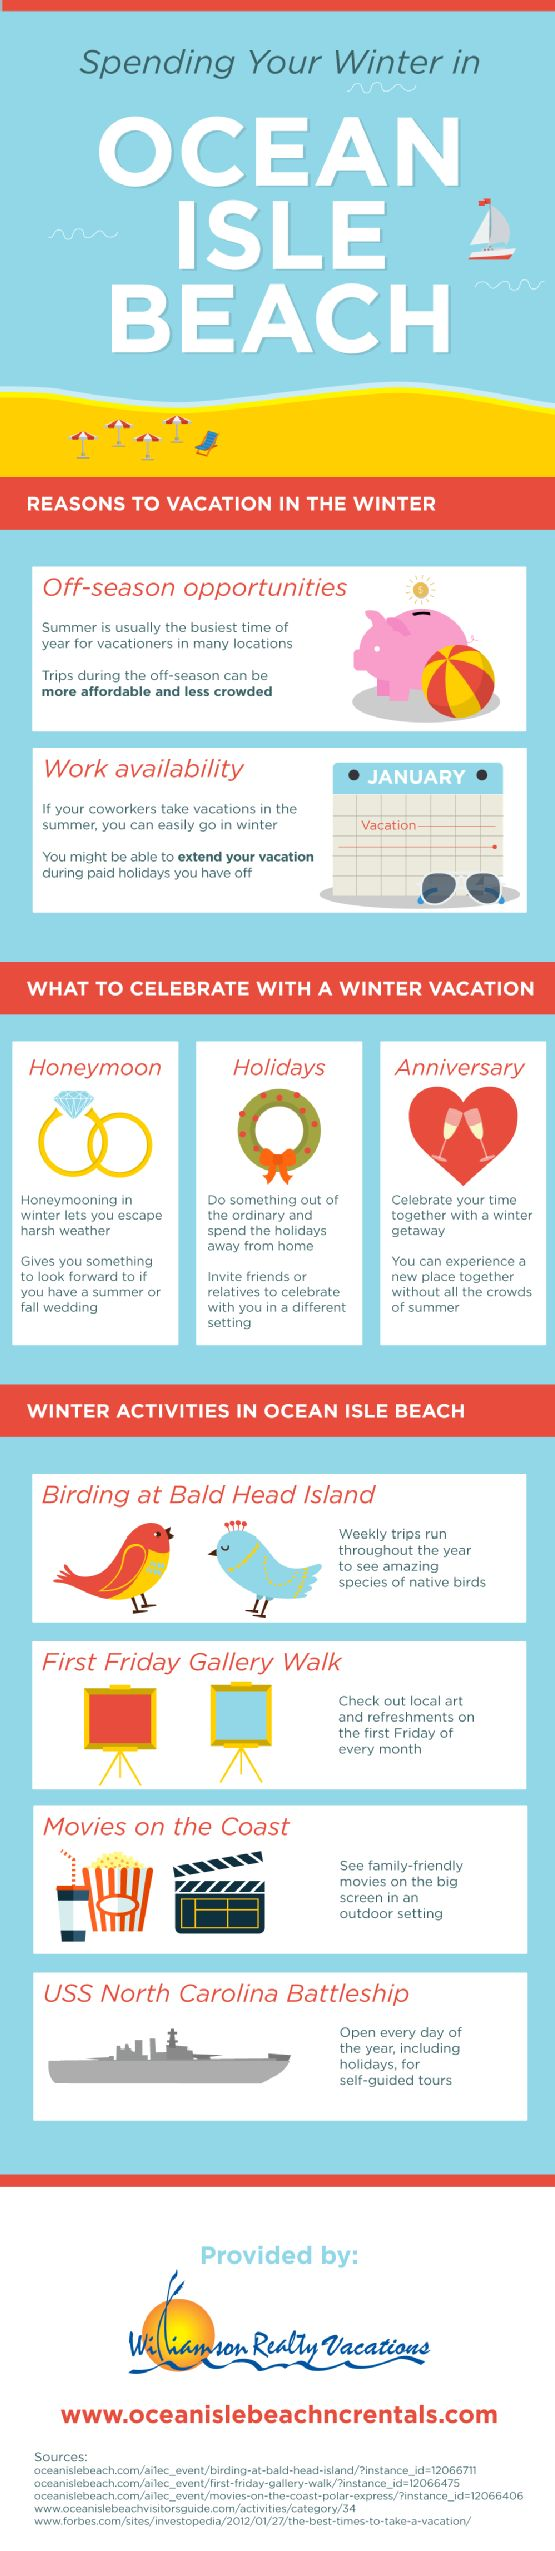 Honeymooning in the winter lets you escape harsh weather! This idea also gives you something to look forward to if you have a summer or fall wedding. Take a look at this Myrtle Beach vacation infographic to see more reasons to take your honeymoon in the winter.